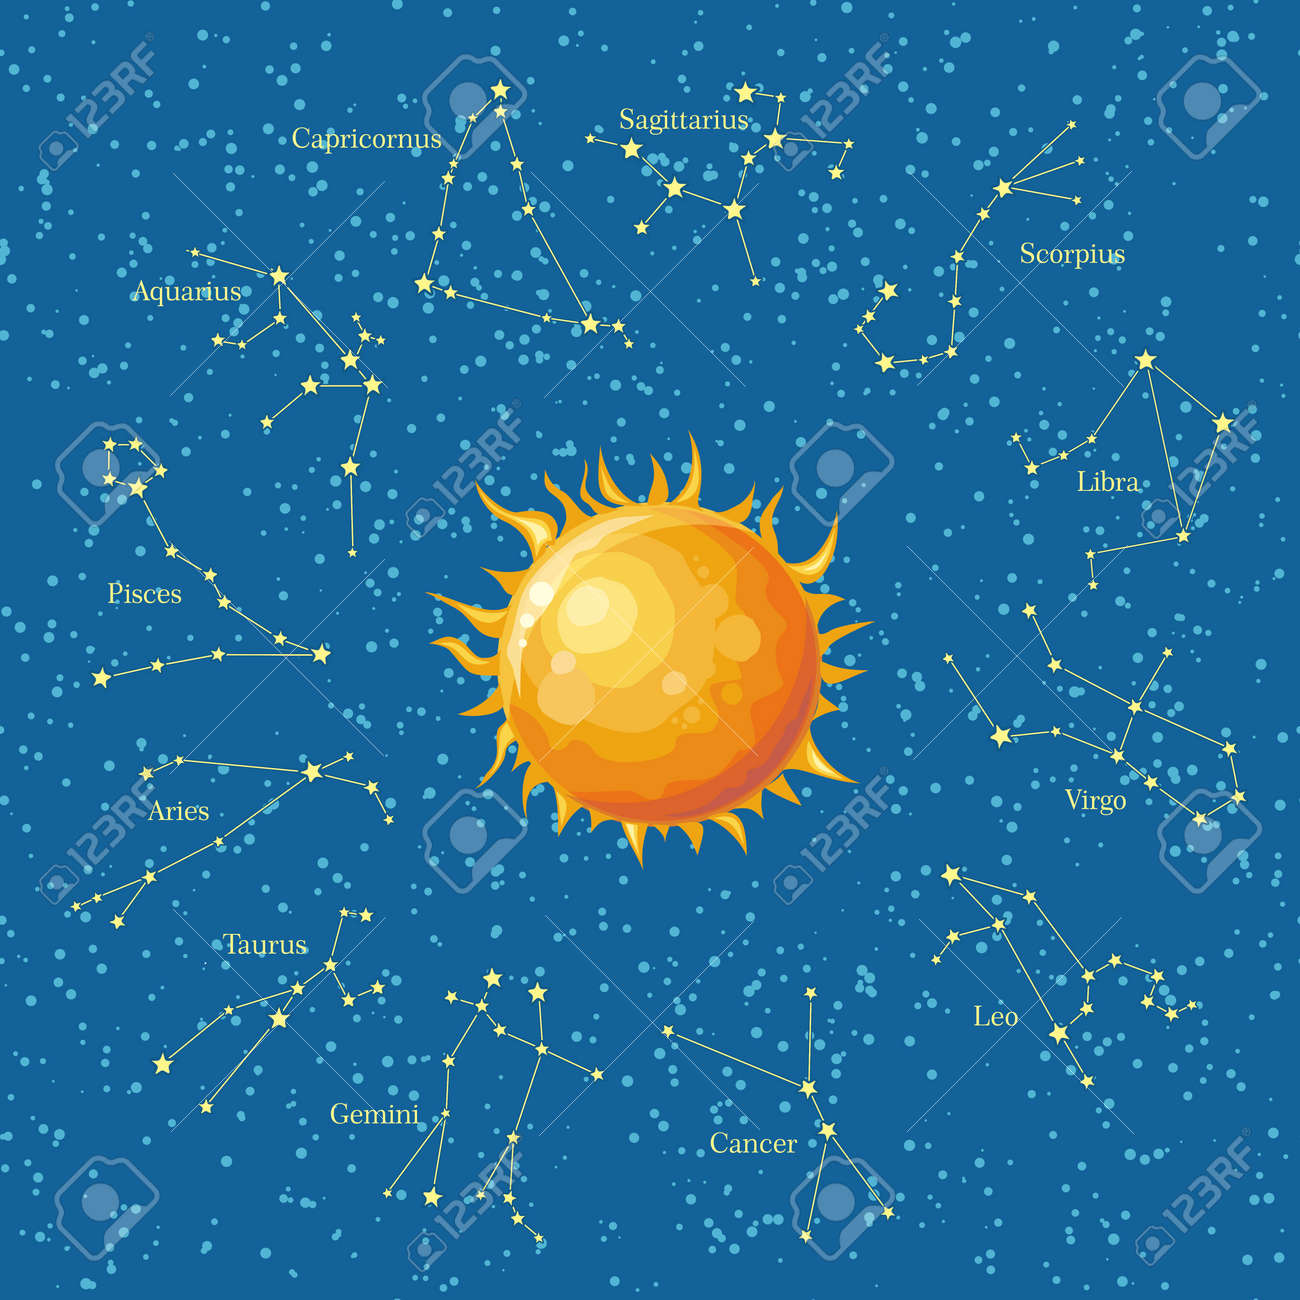 Zodiac Astrological Sign Symbols In Cosmic Sky Royalty Free Cliparts